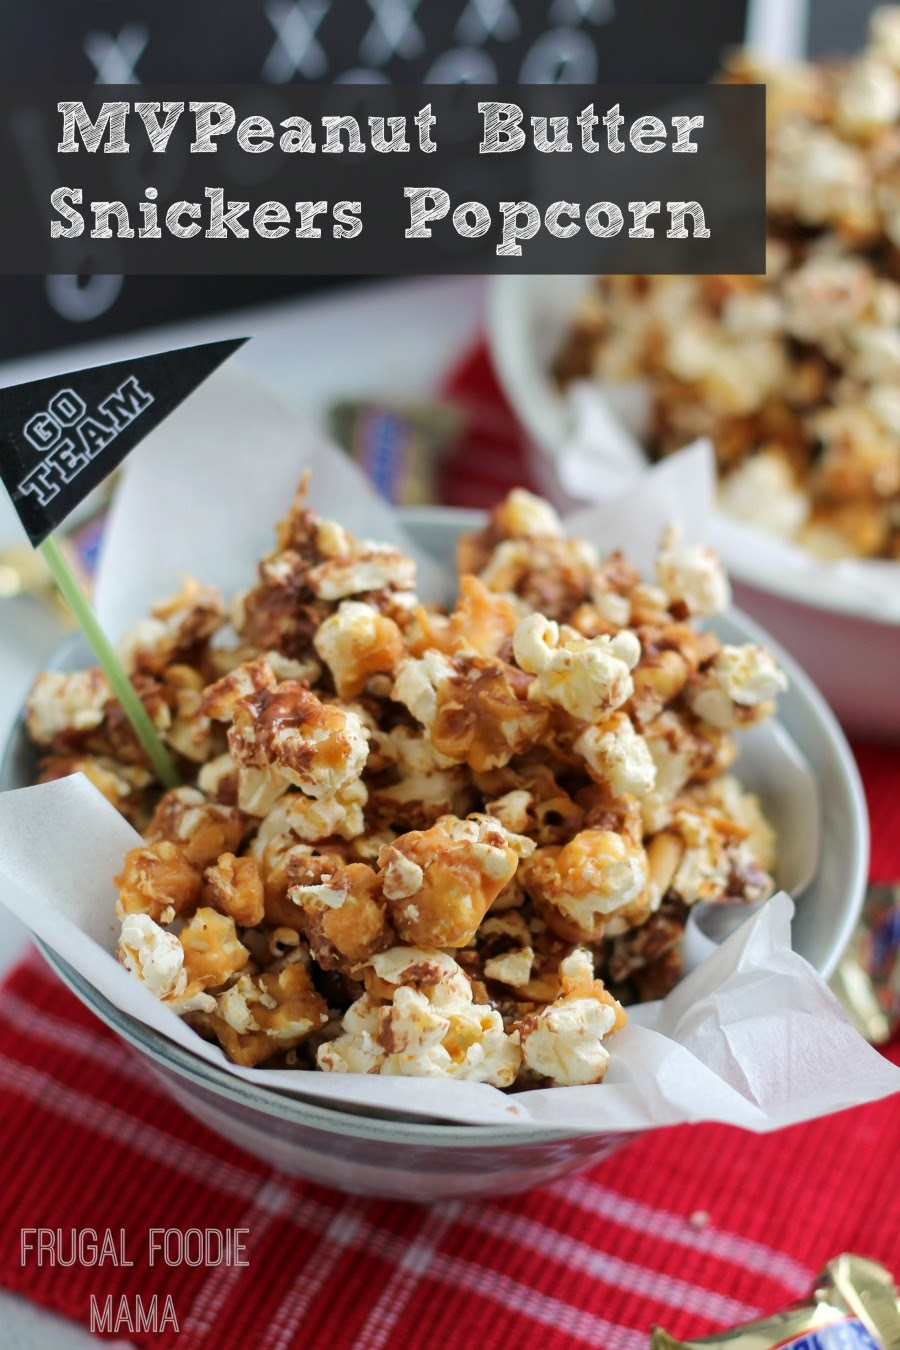 This MVPeanut Butter Snickers Popcorn with it's crunchy popcorn, gooey peanut butter, and bits of Snickers is the perfect sweet treat for game day.